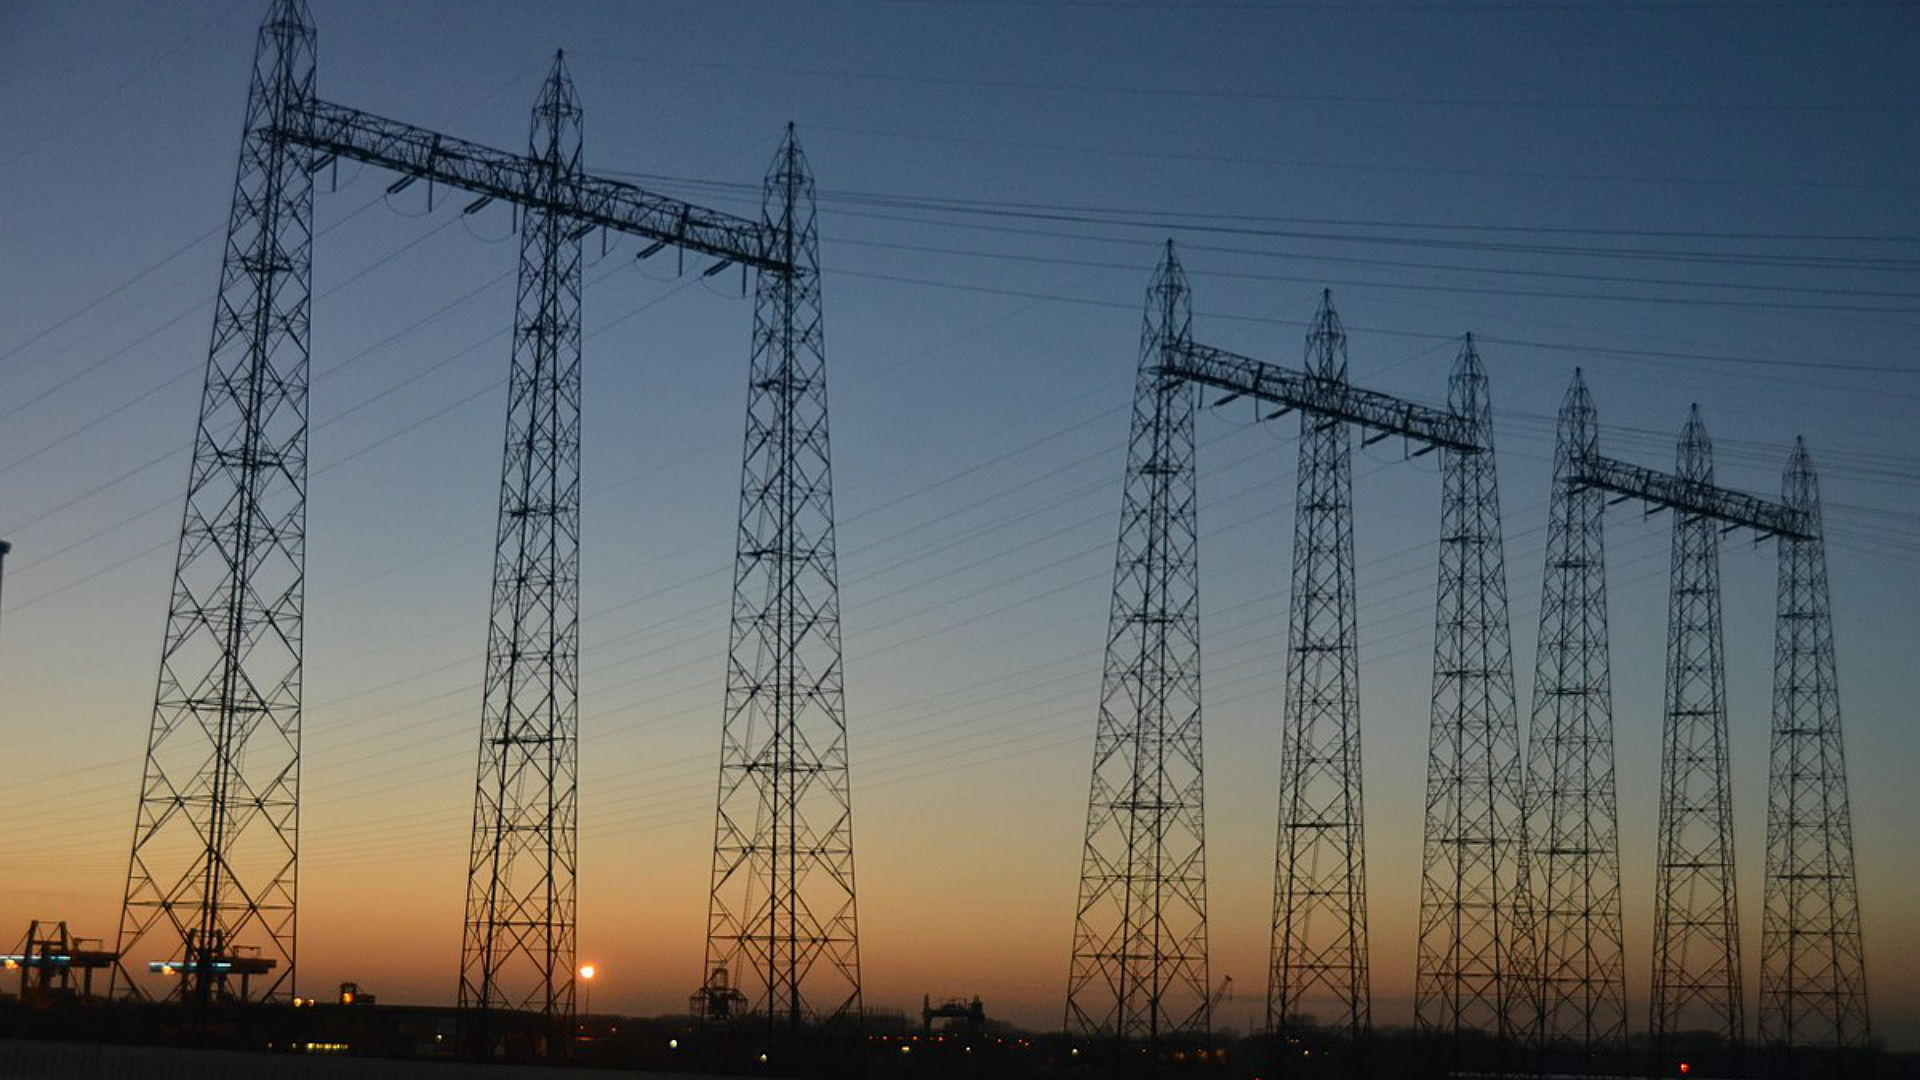 Strategic Planning - Charting Your Course: Electrogrid Corporation